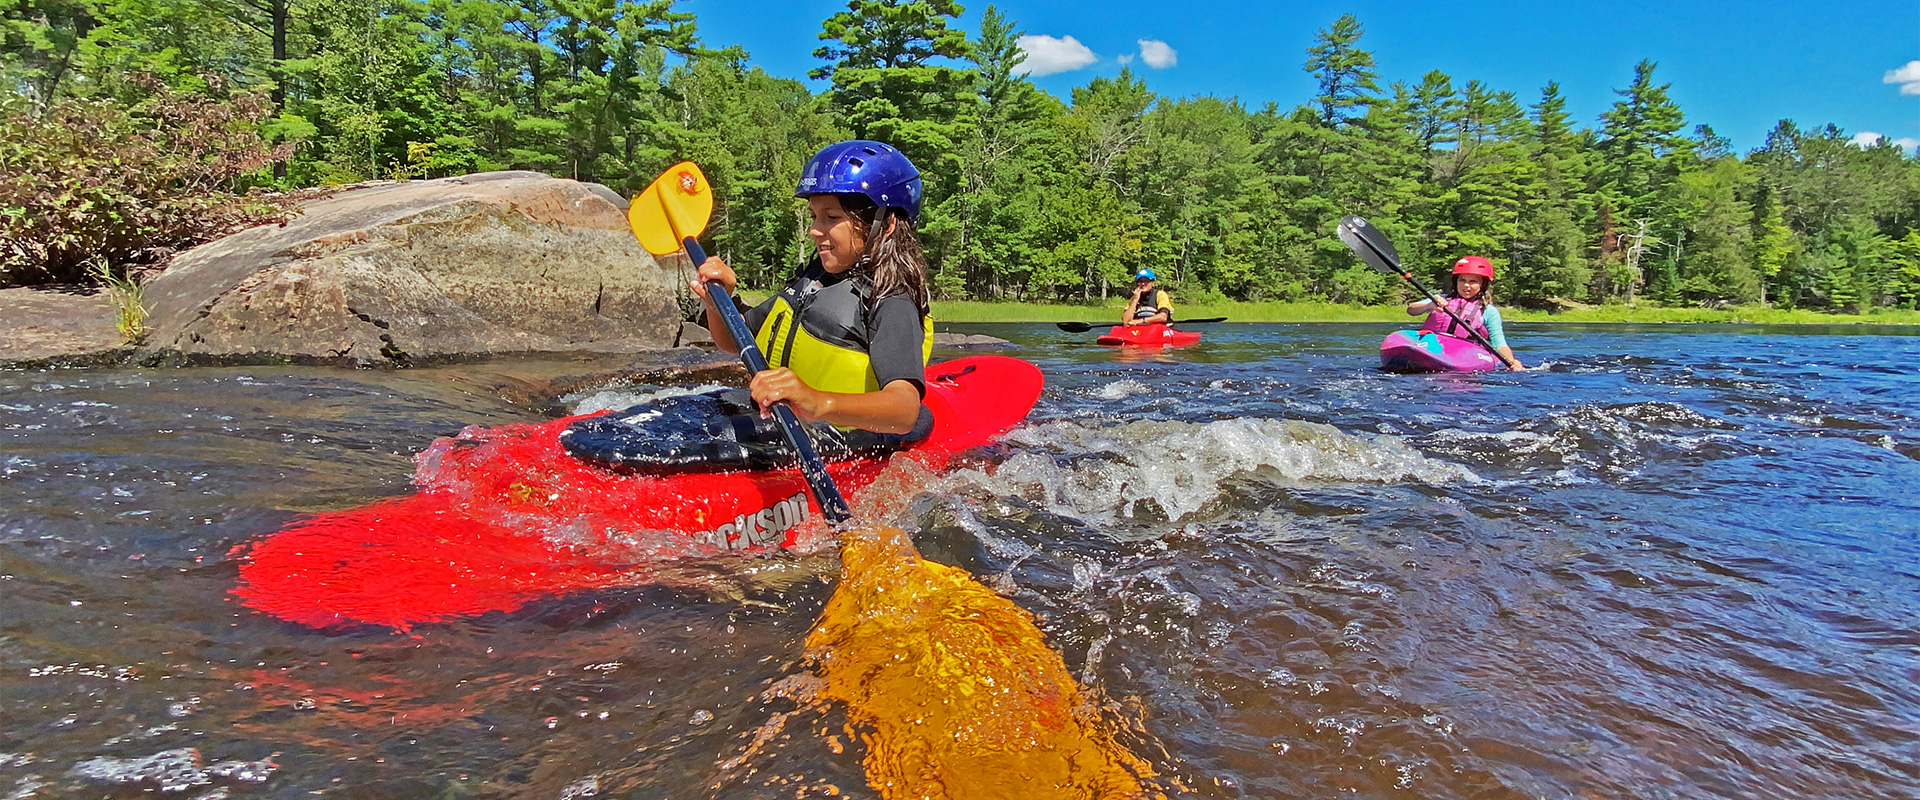 vimff family show the new generation of whitewater paddlers title bg